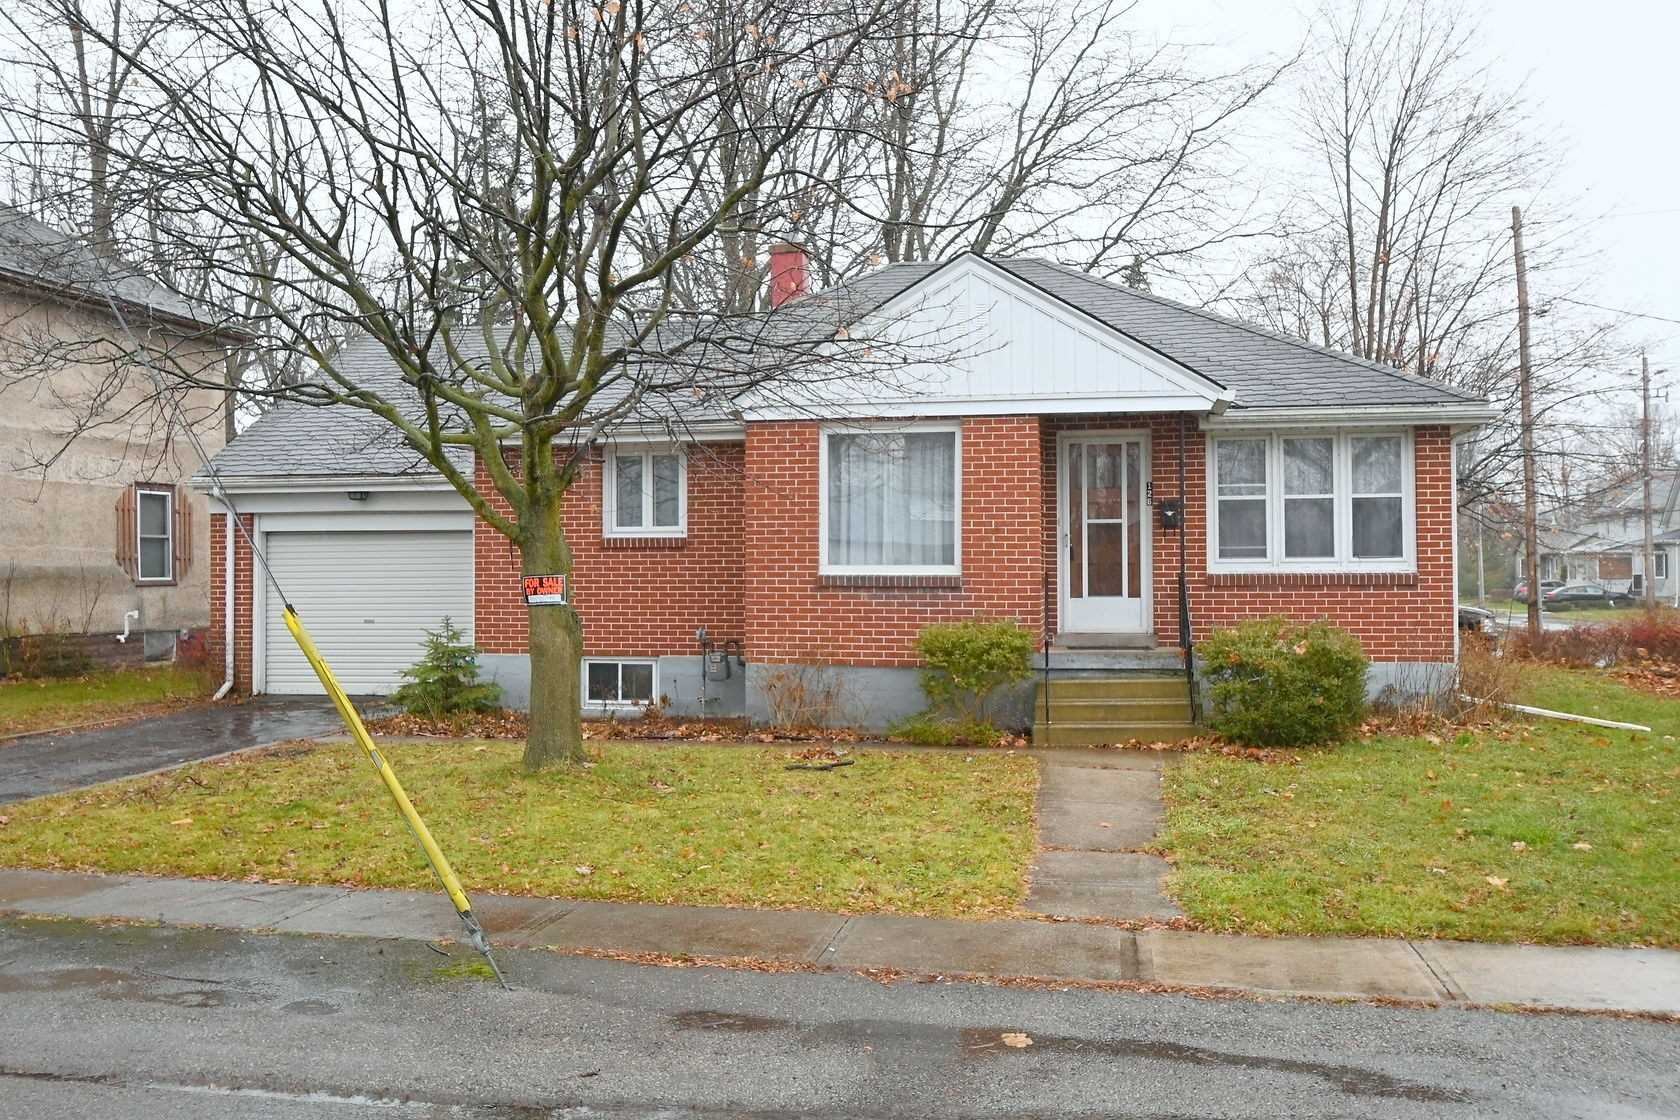 pictures of house for sale MLS: X4651035 located at 126 Cross St W, Haldimand N1A1N2